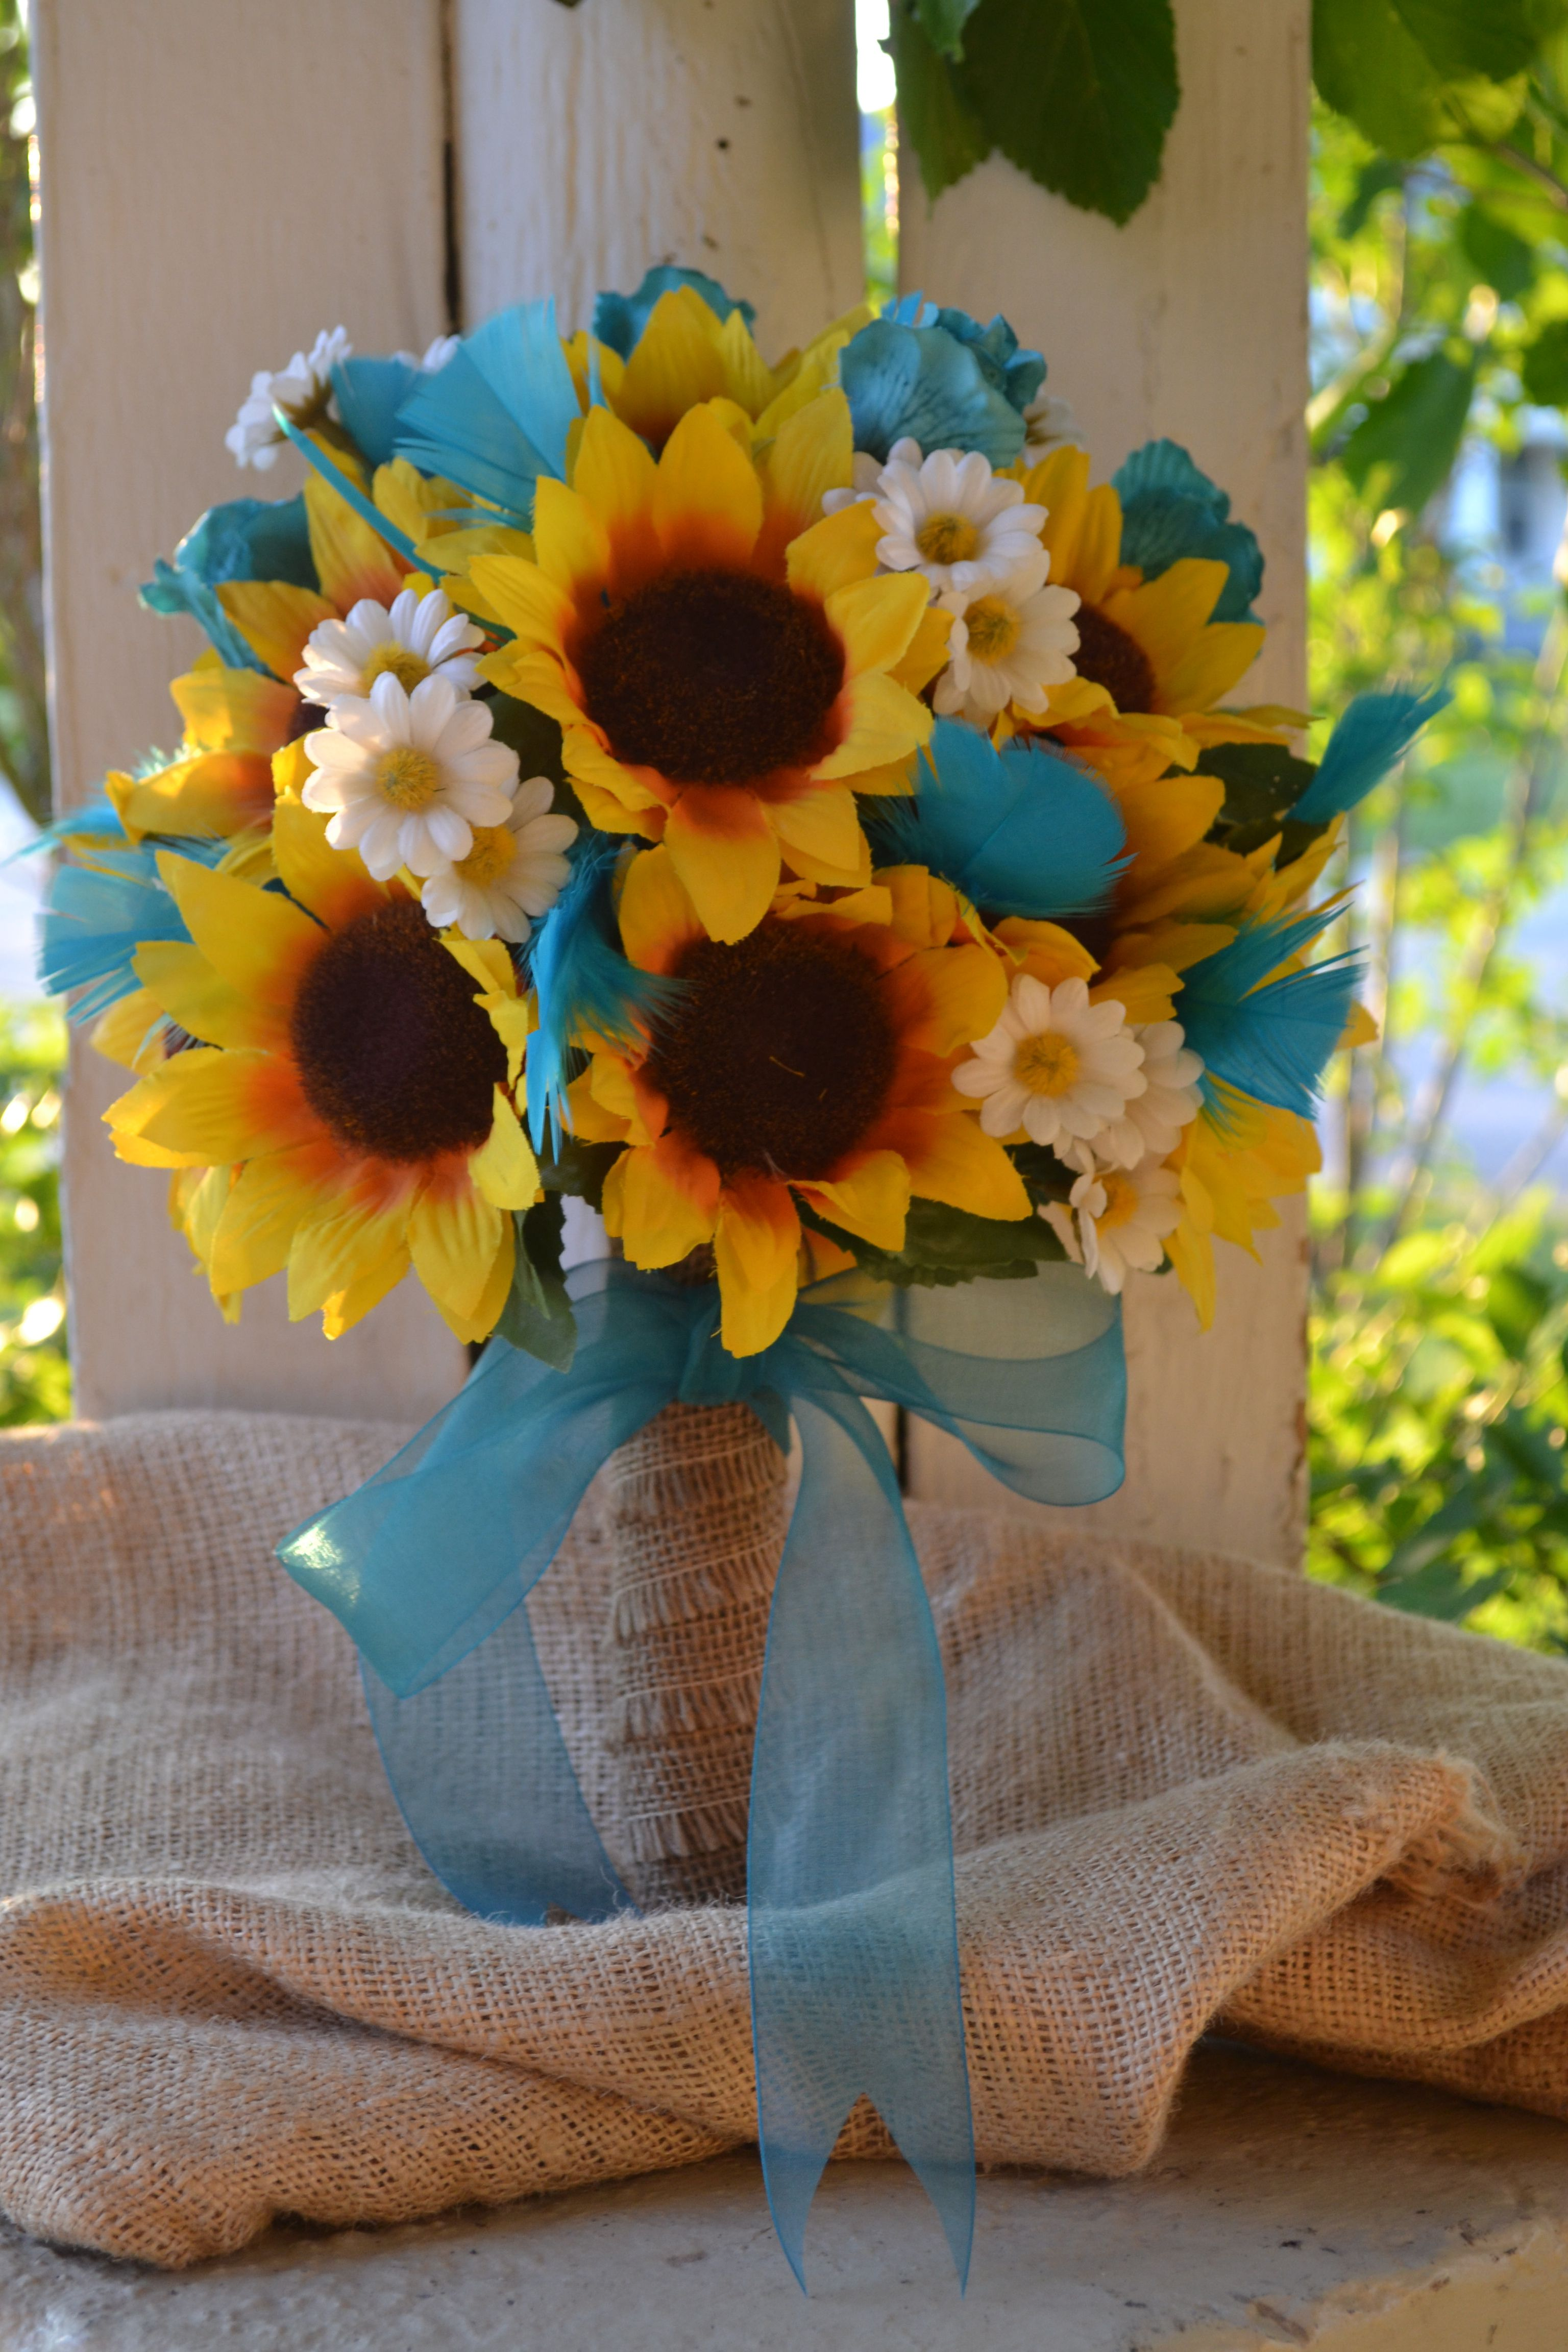 My Day Bouquet Sunflowers Turquoise Rose Buds Turquoise Goose